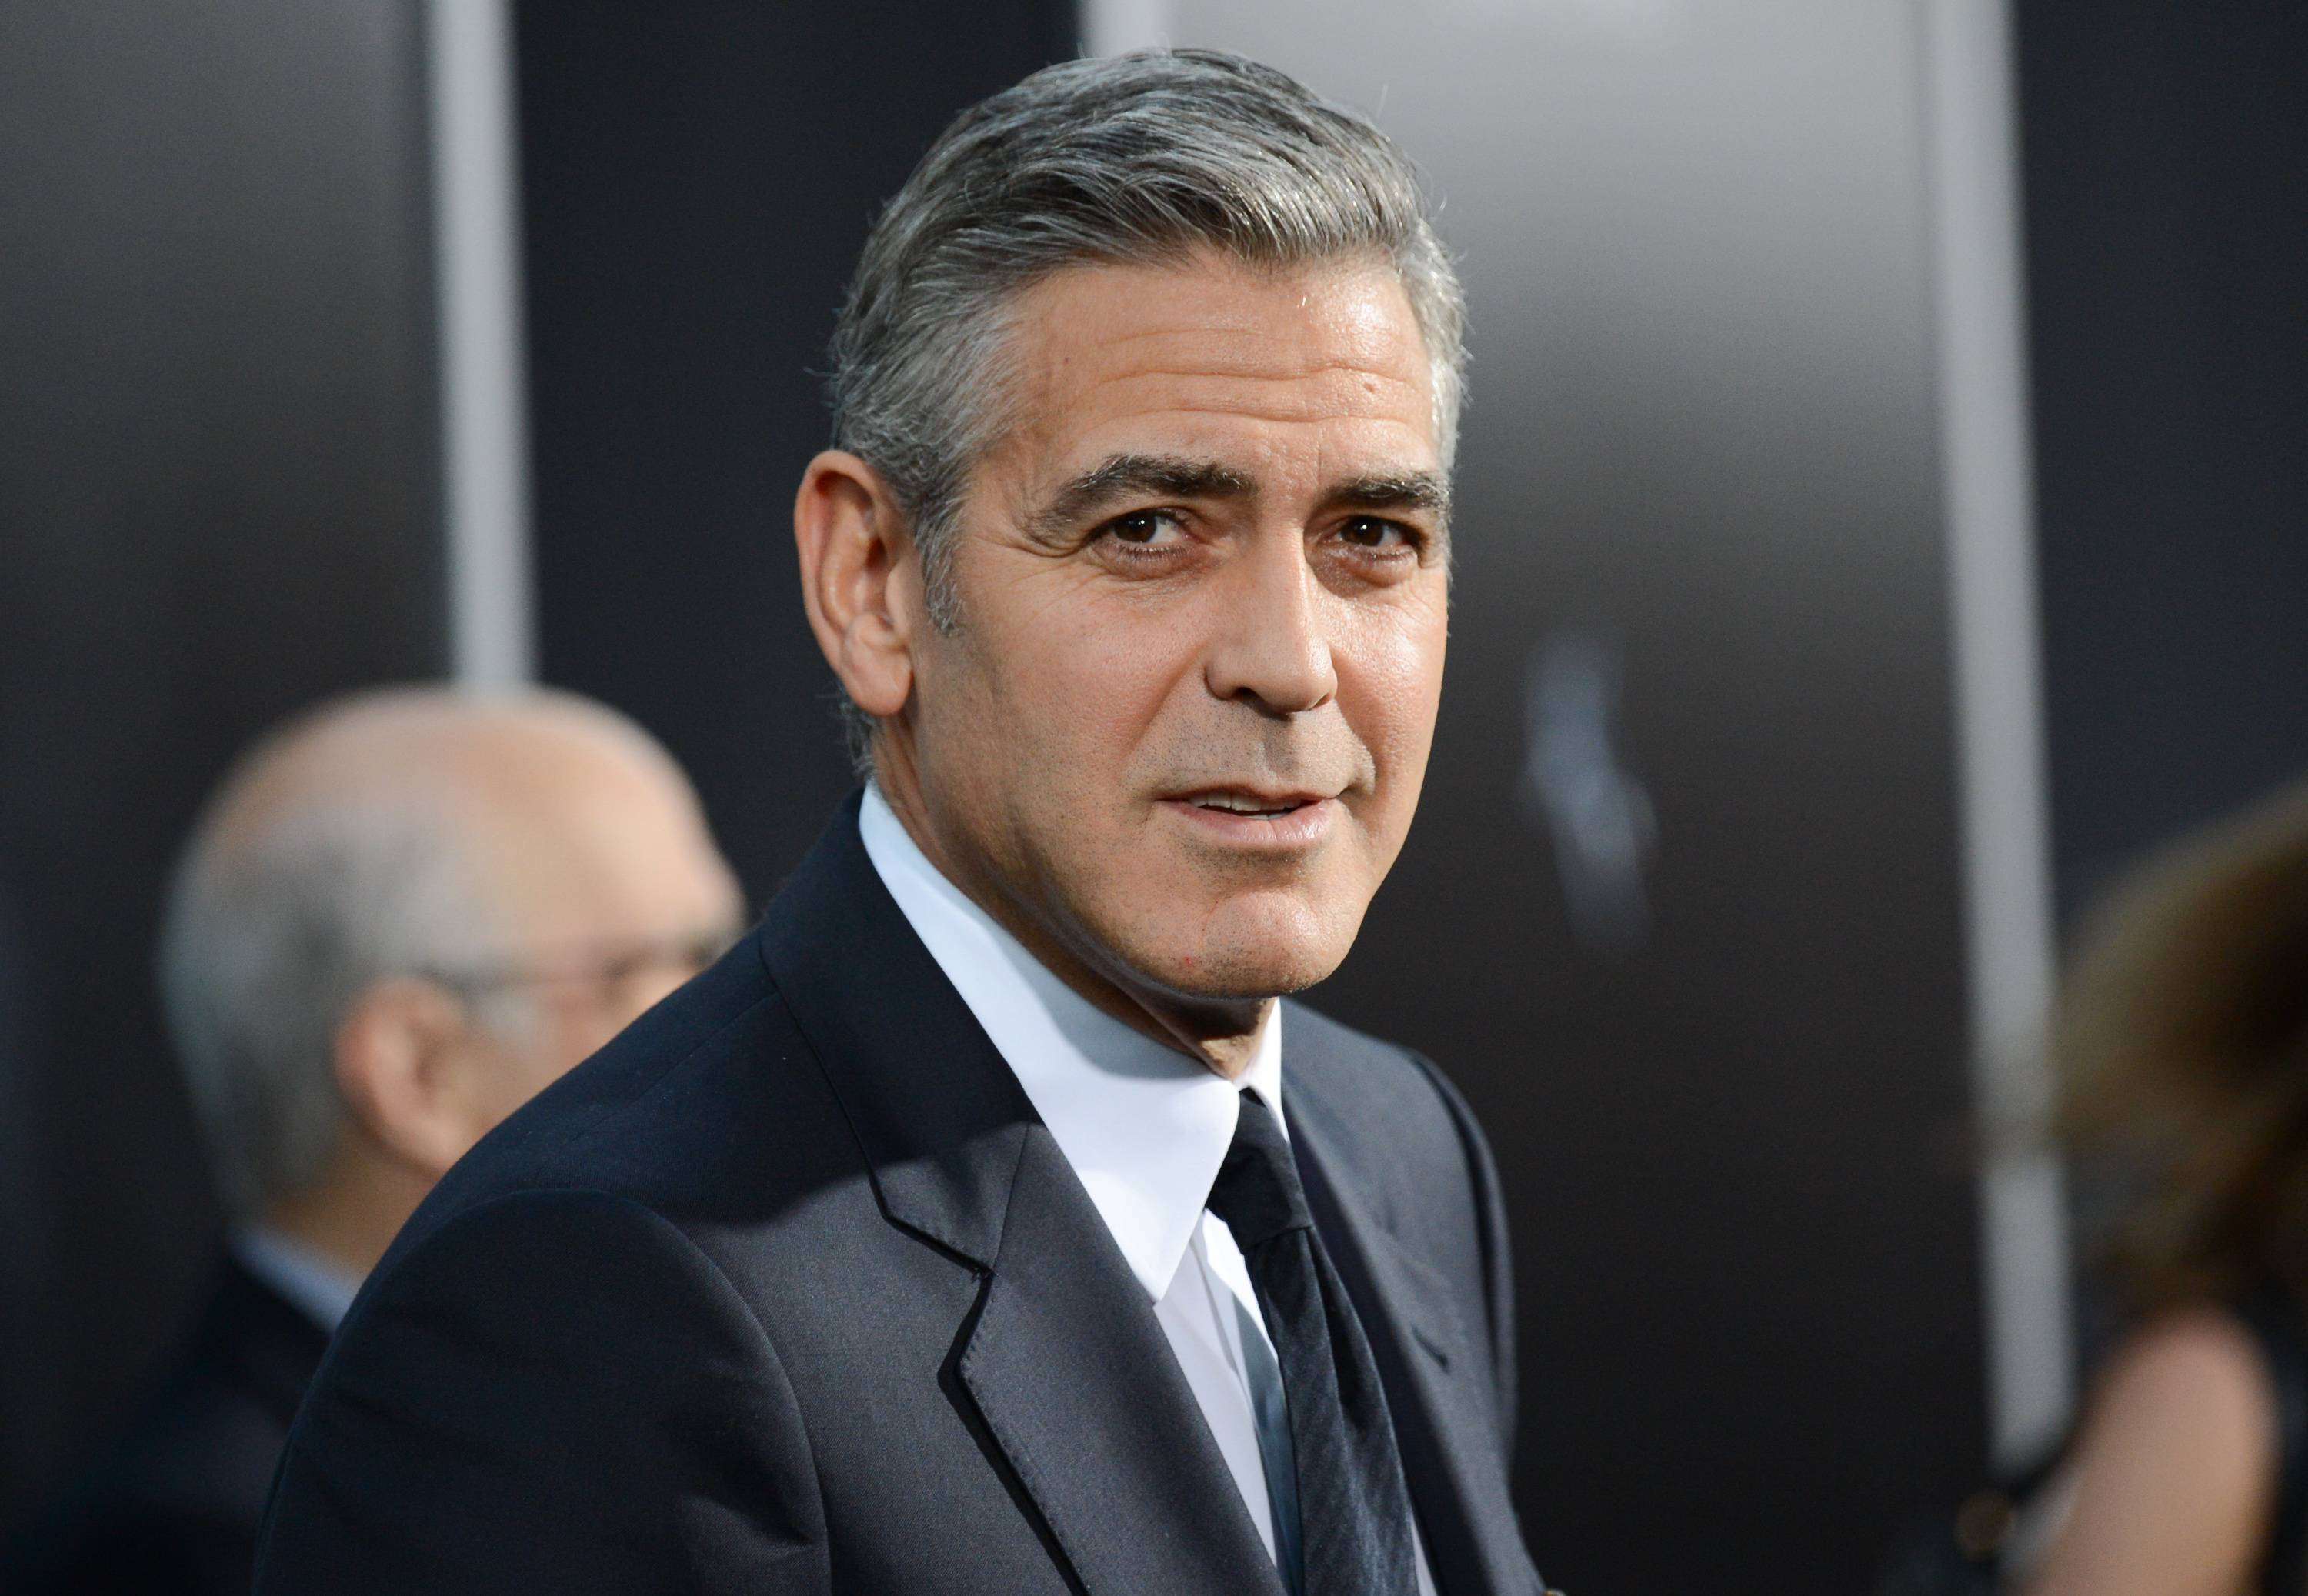 The Hollywood Foreign Press Association announced on the Golden Globe Awards website that George Clooney will be the next recipient of the Cecil B. DeMille Award. The Golden Globe Awards will be held on Jan. 11, 2015.